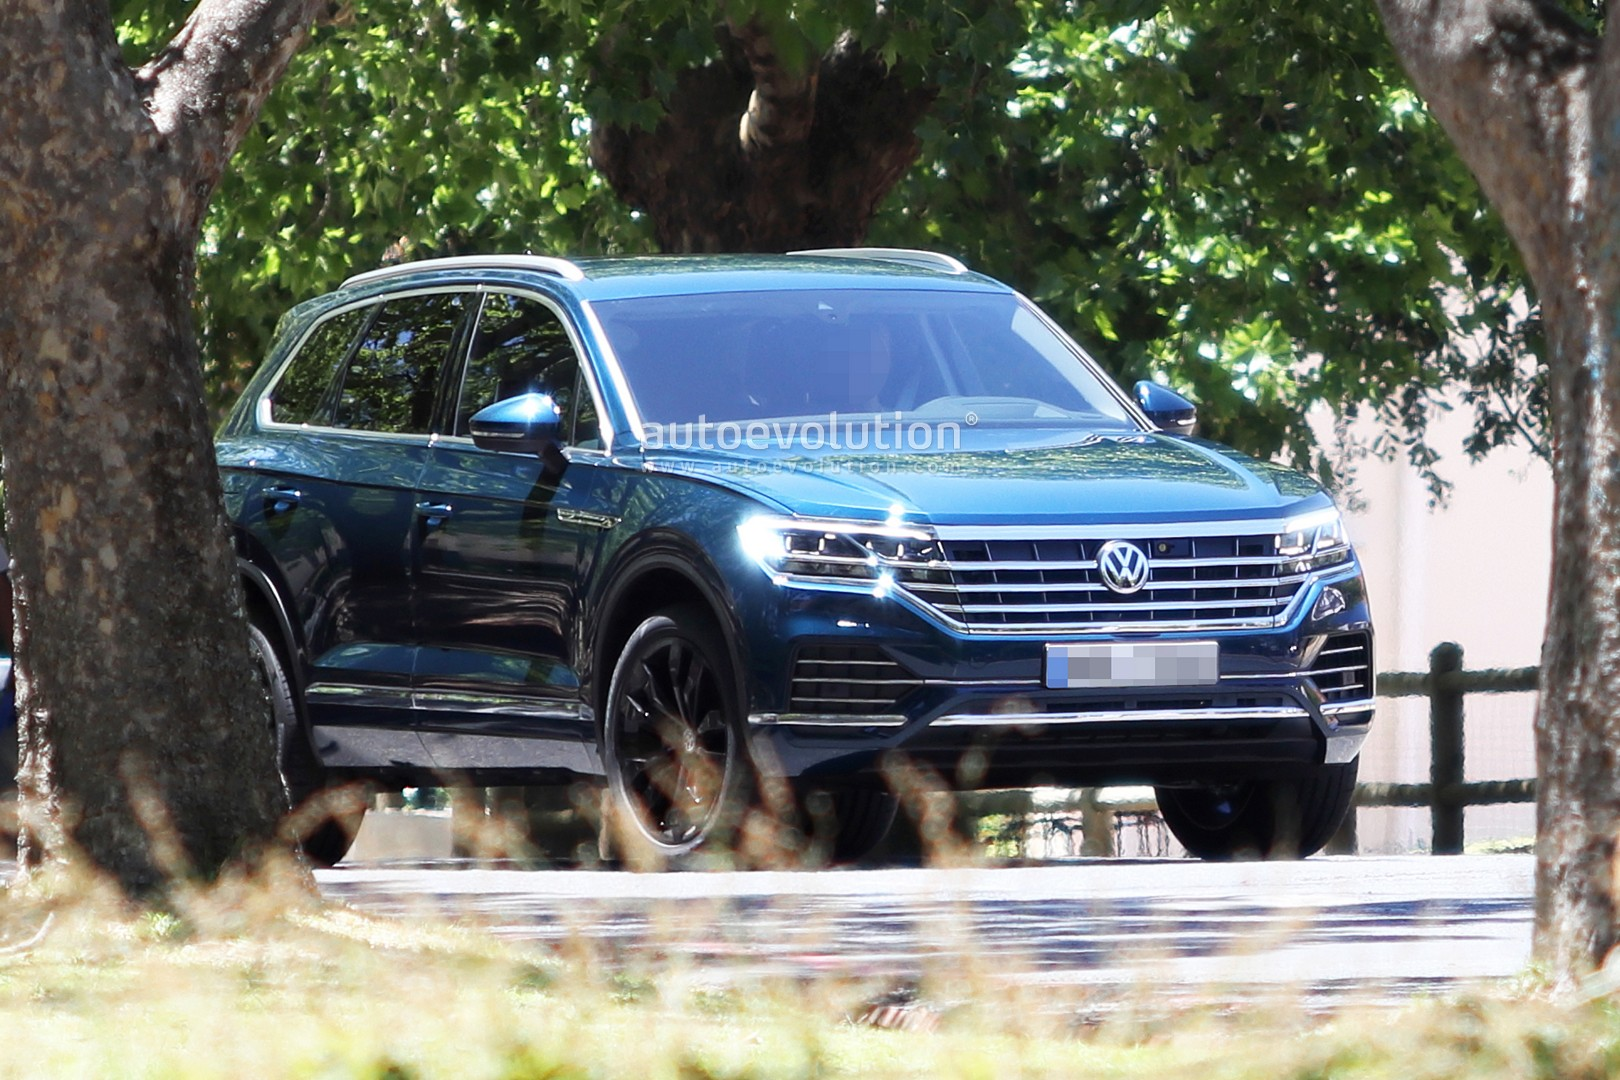 2019 Volkswagen Touareg Revealed In Full By Latest Spy Photos